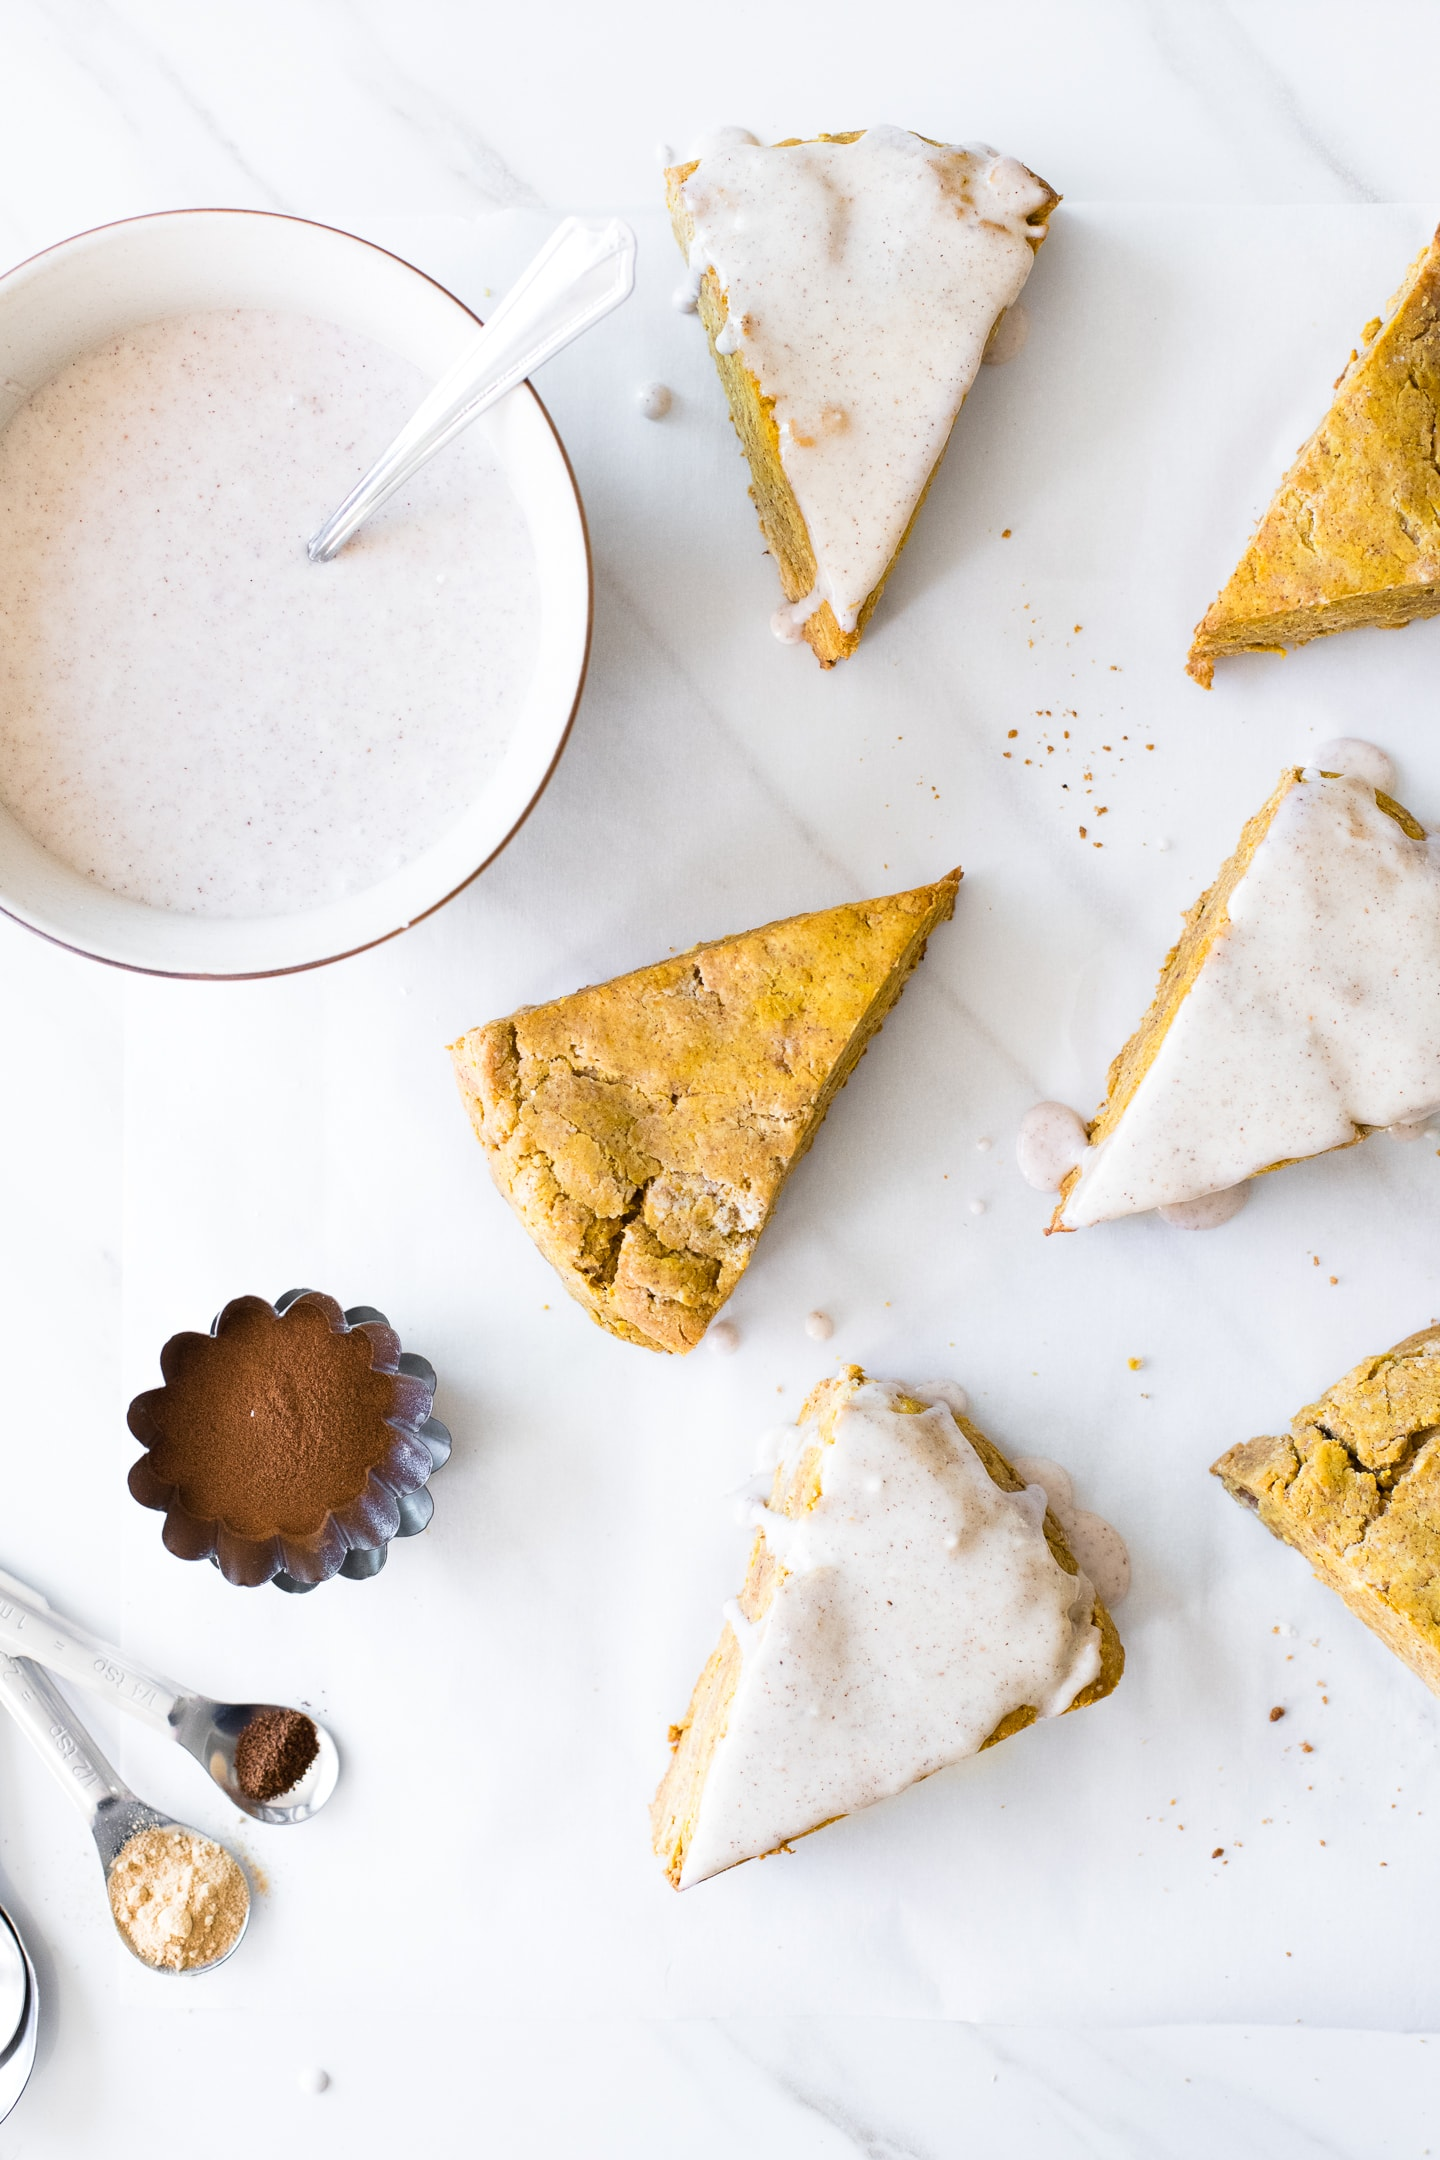 Overhead view of pumpkin scones on a white background. Some scones are glazed with a pumpkin spice glaze, and a bowl of glaze sits off to the side.